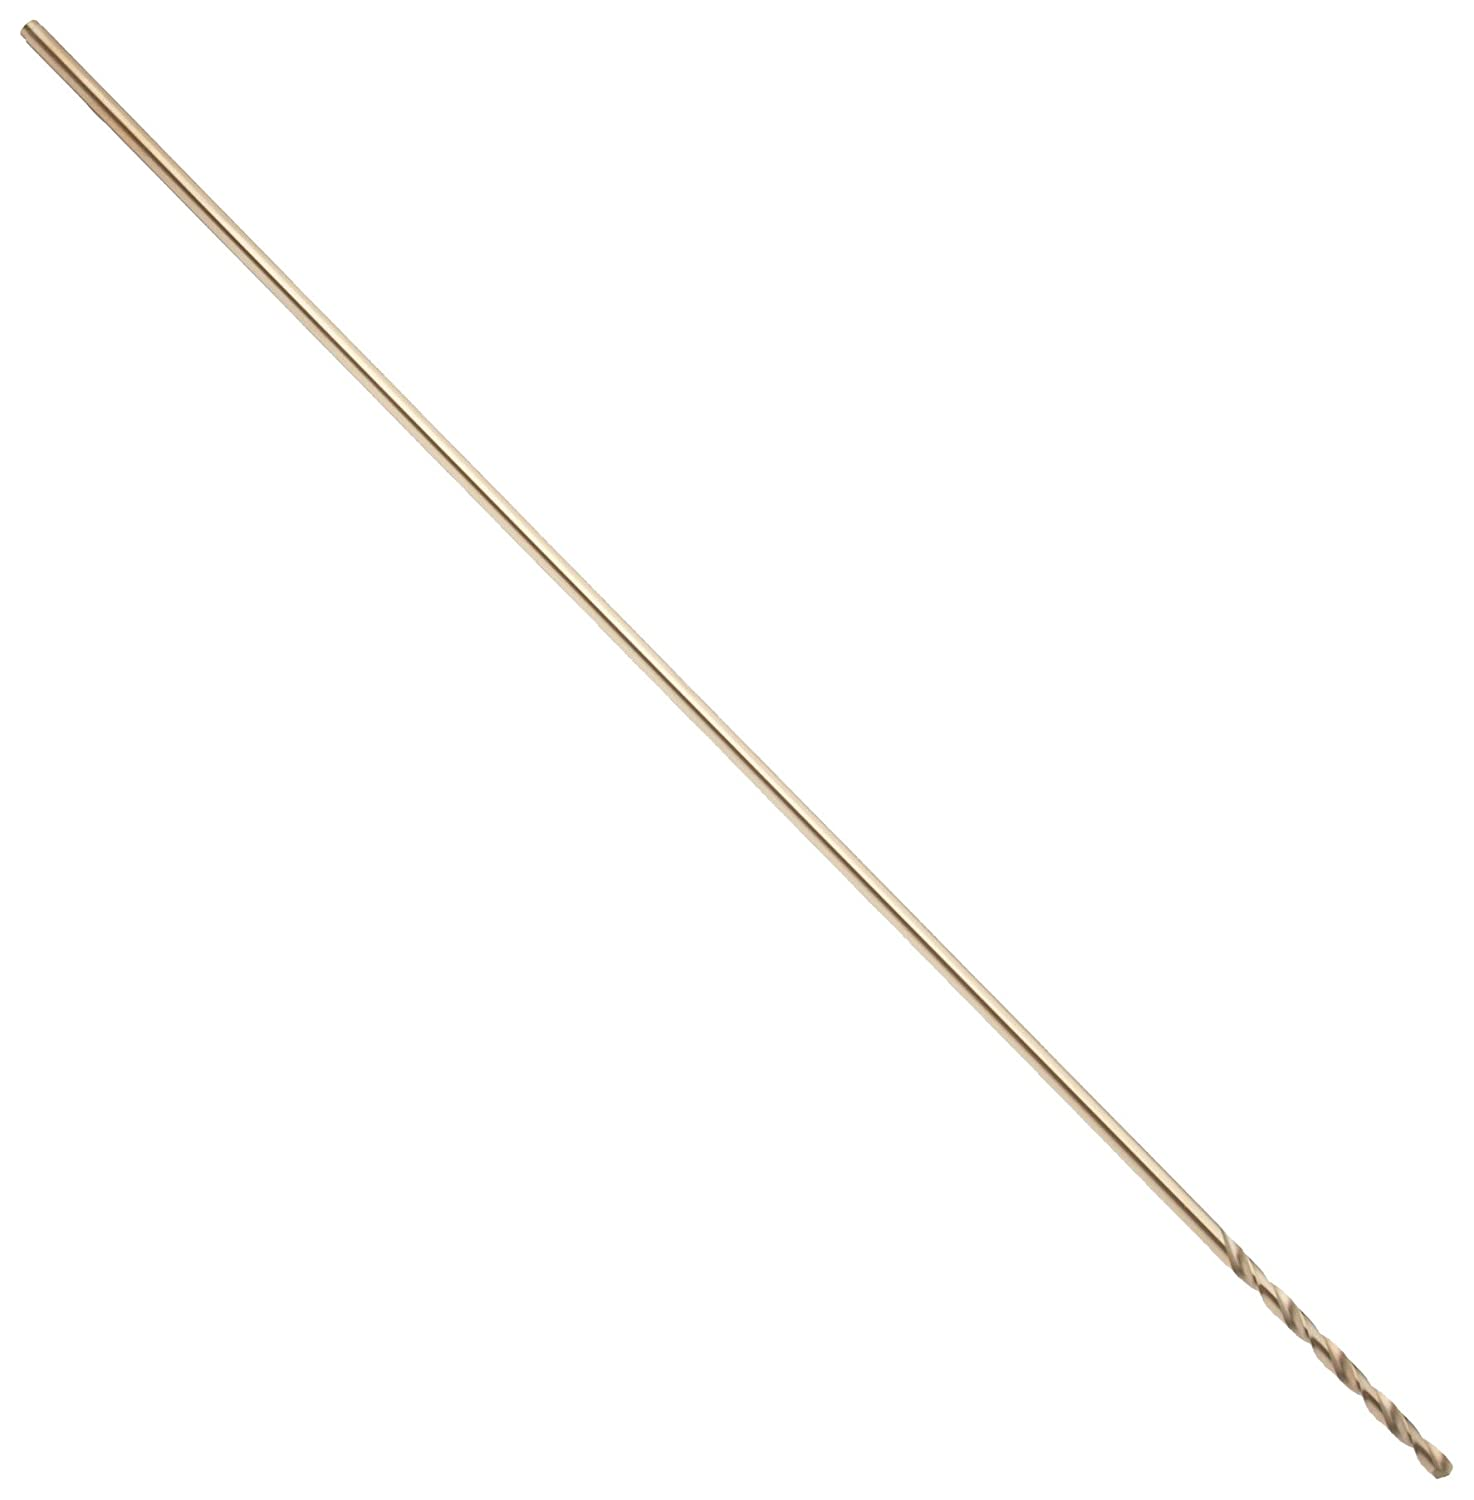 Precision Twist CO500 12 Cobalt Steel Extra-Long Drill Bit 13//64 Round Shank Bronze Oxide Finish Pack of 6 Spiral Flute 135 Degree Point Angle